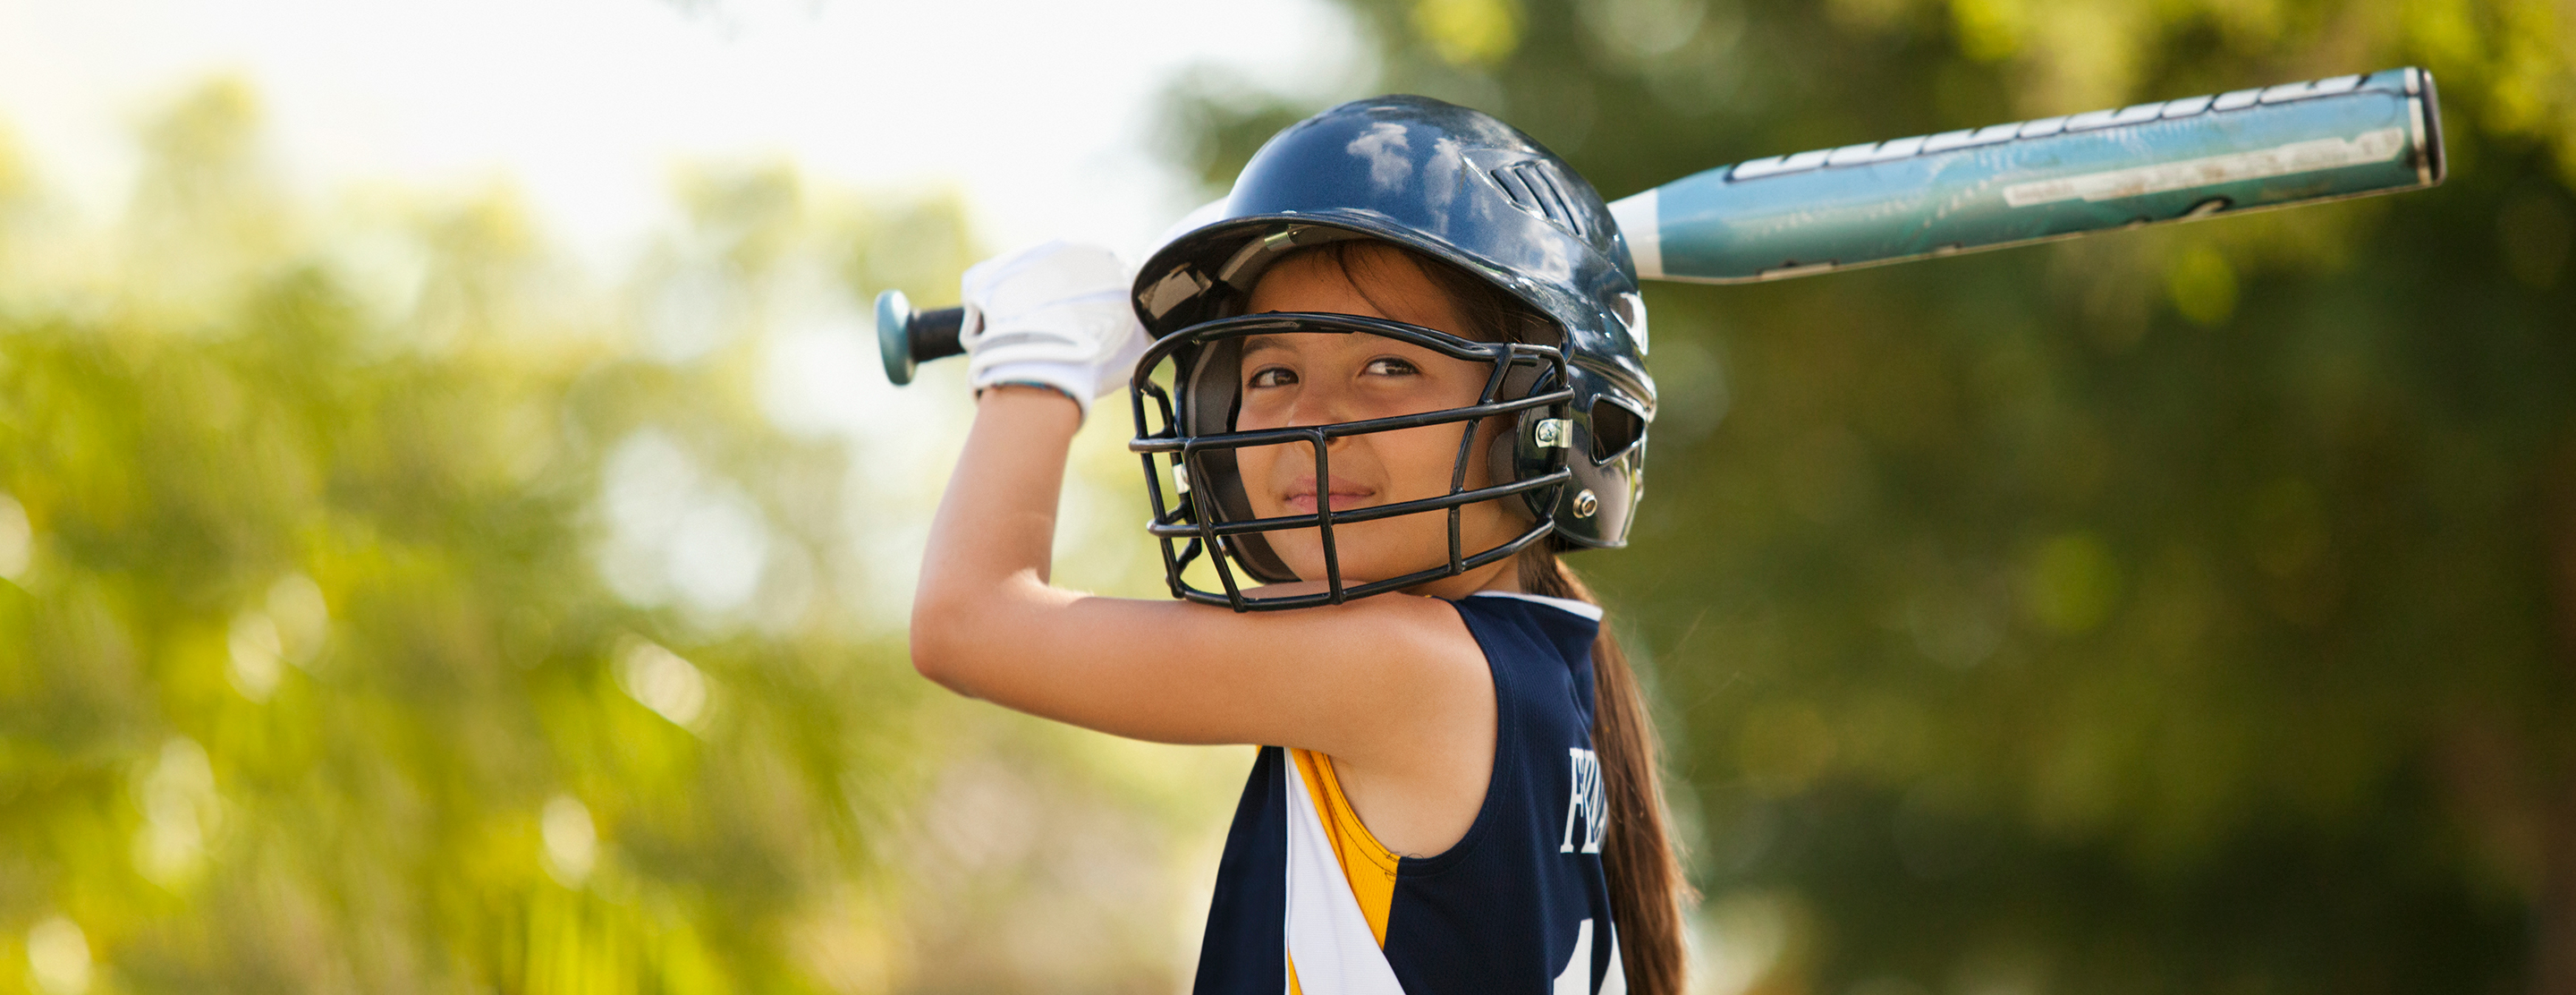 faq-childhood-baseball-injuries-2x